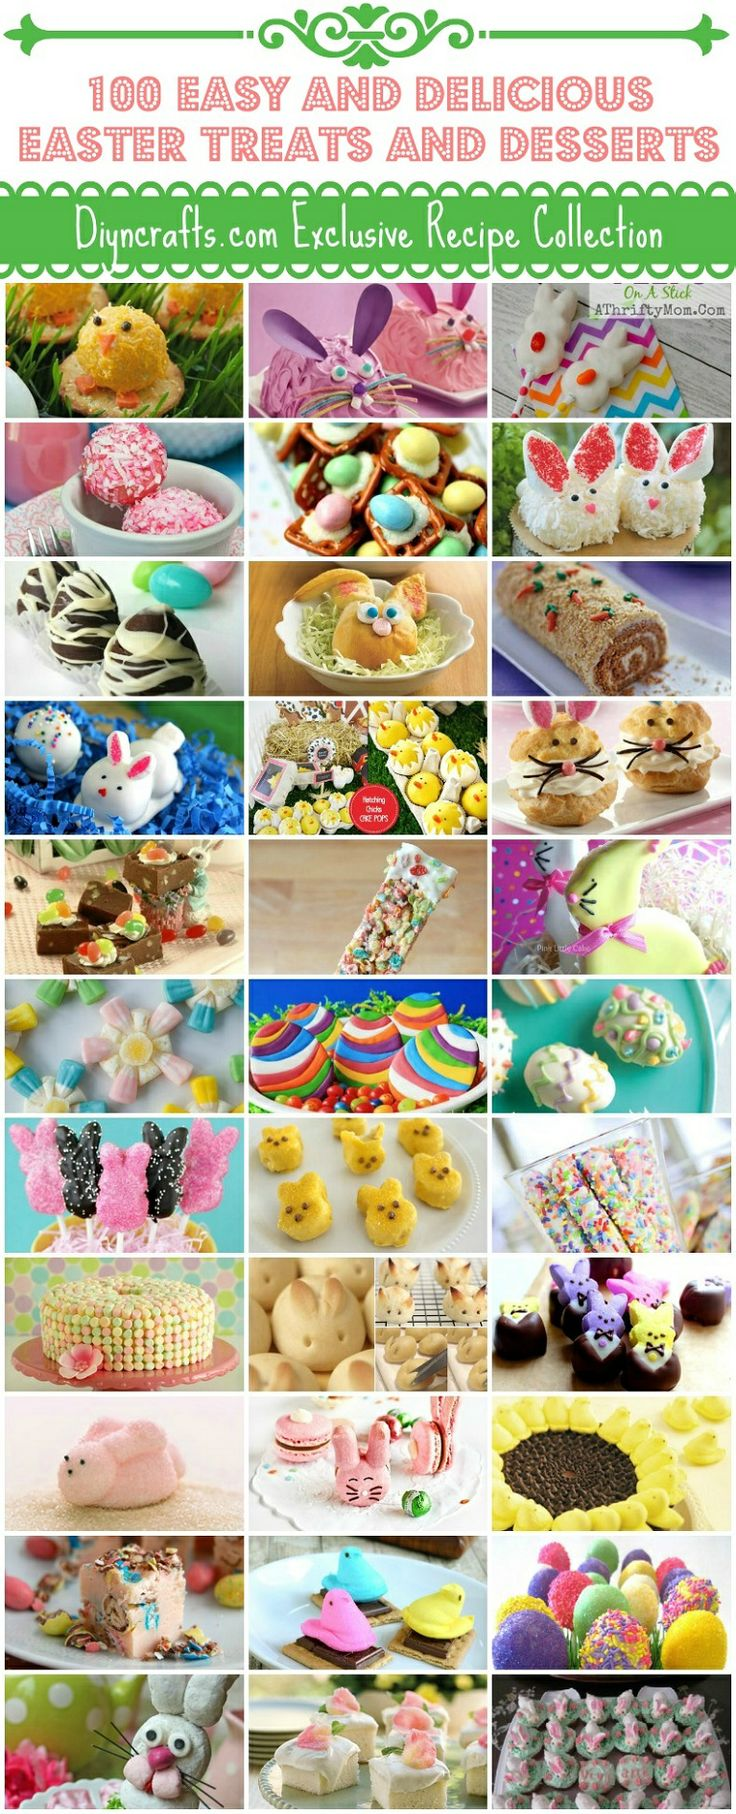 100 Easy and Delicious Easter Treats and Desserts-- This is the ultimate Easter Treats list. | DIY & Crafts | diyncrafts.com